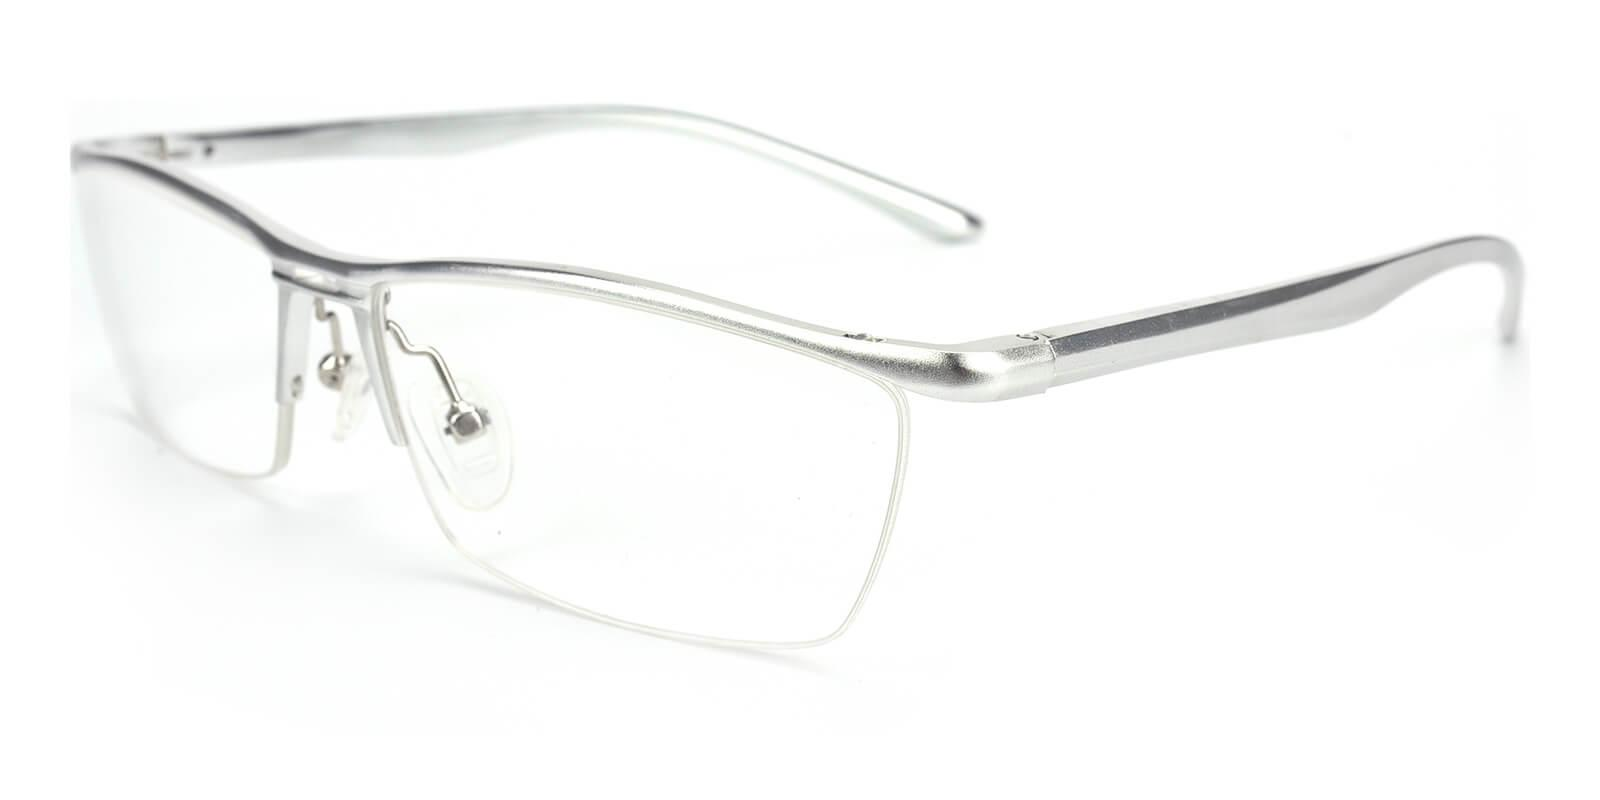 Vauseper-Silver-Rectangle-Metal-Eyeglasses-additional1